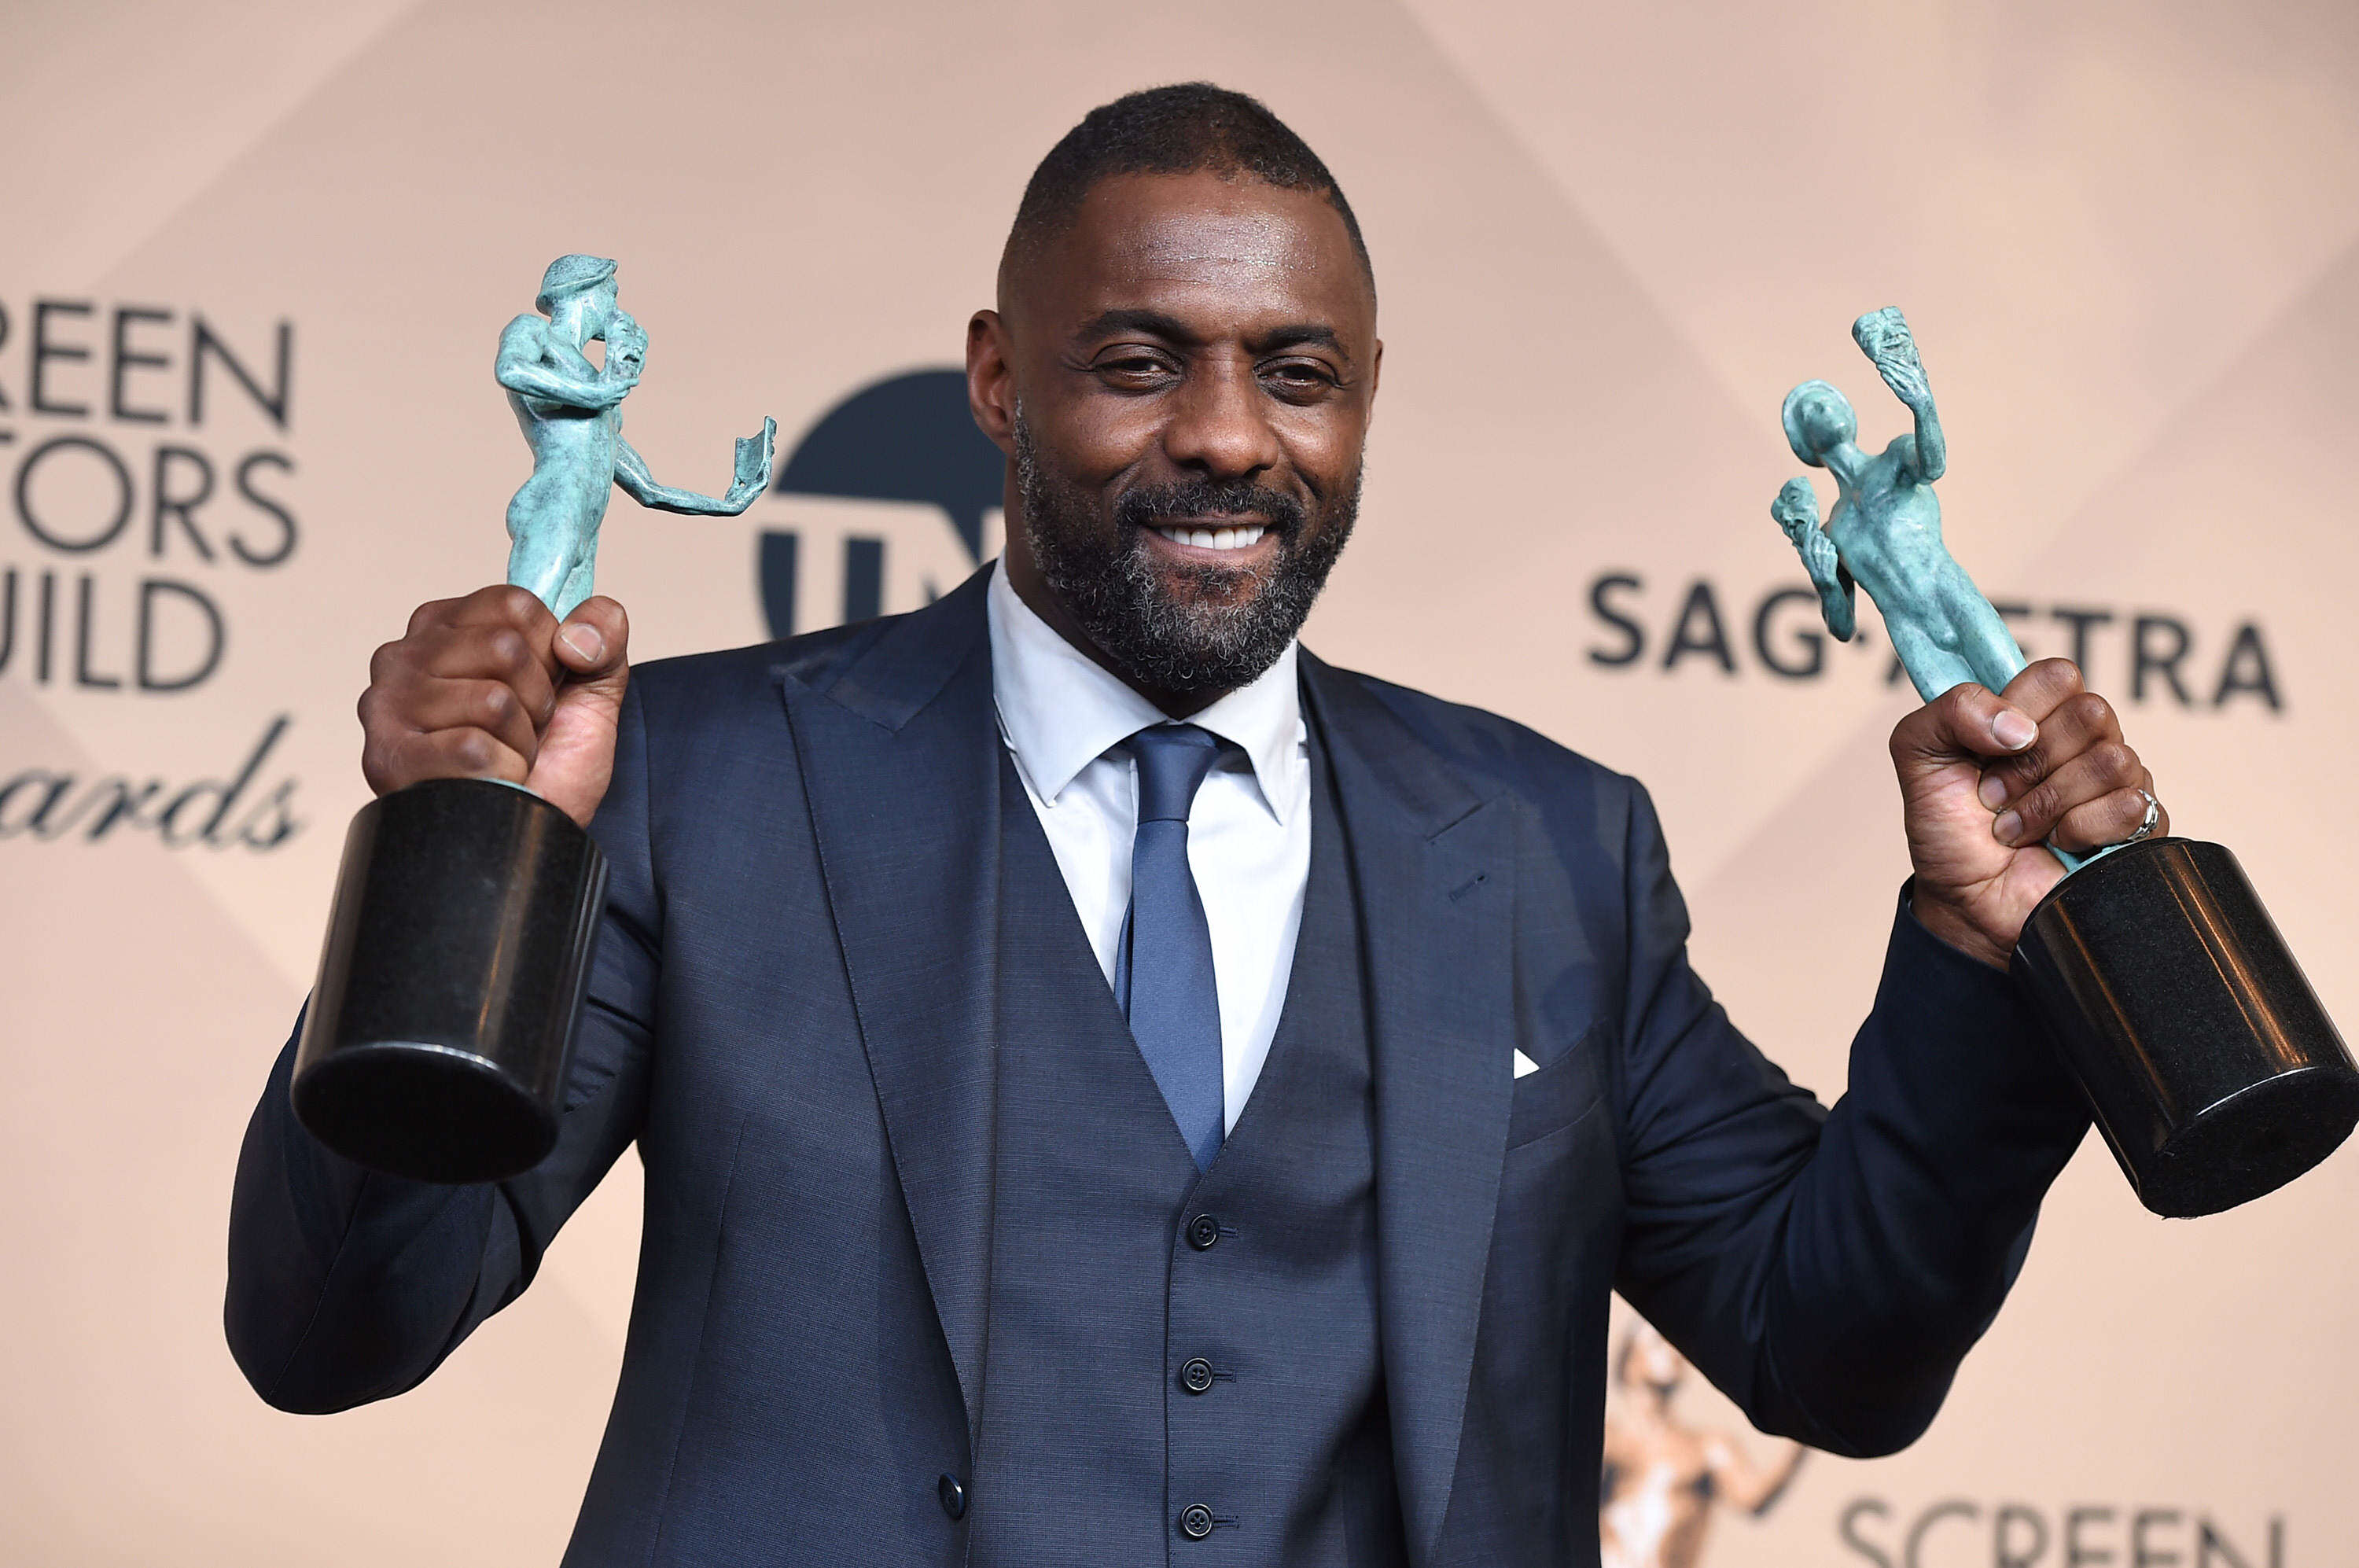 These Rival Movie Awards Highlight Lack Of Diversity At Oscars PA 25387171 1